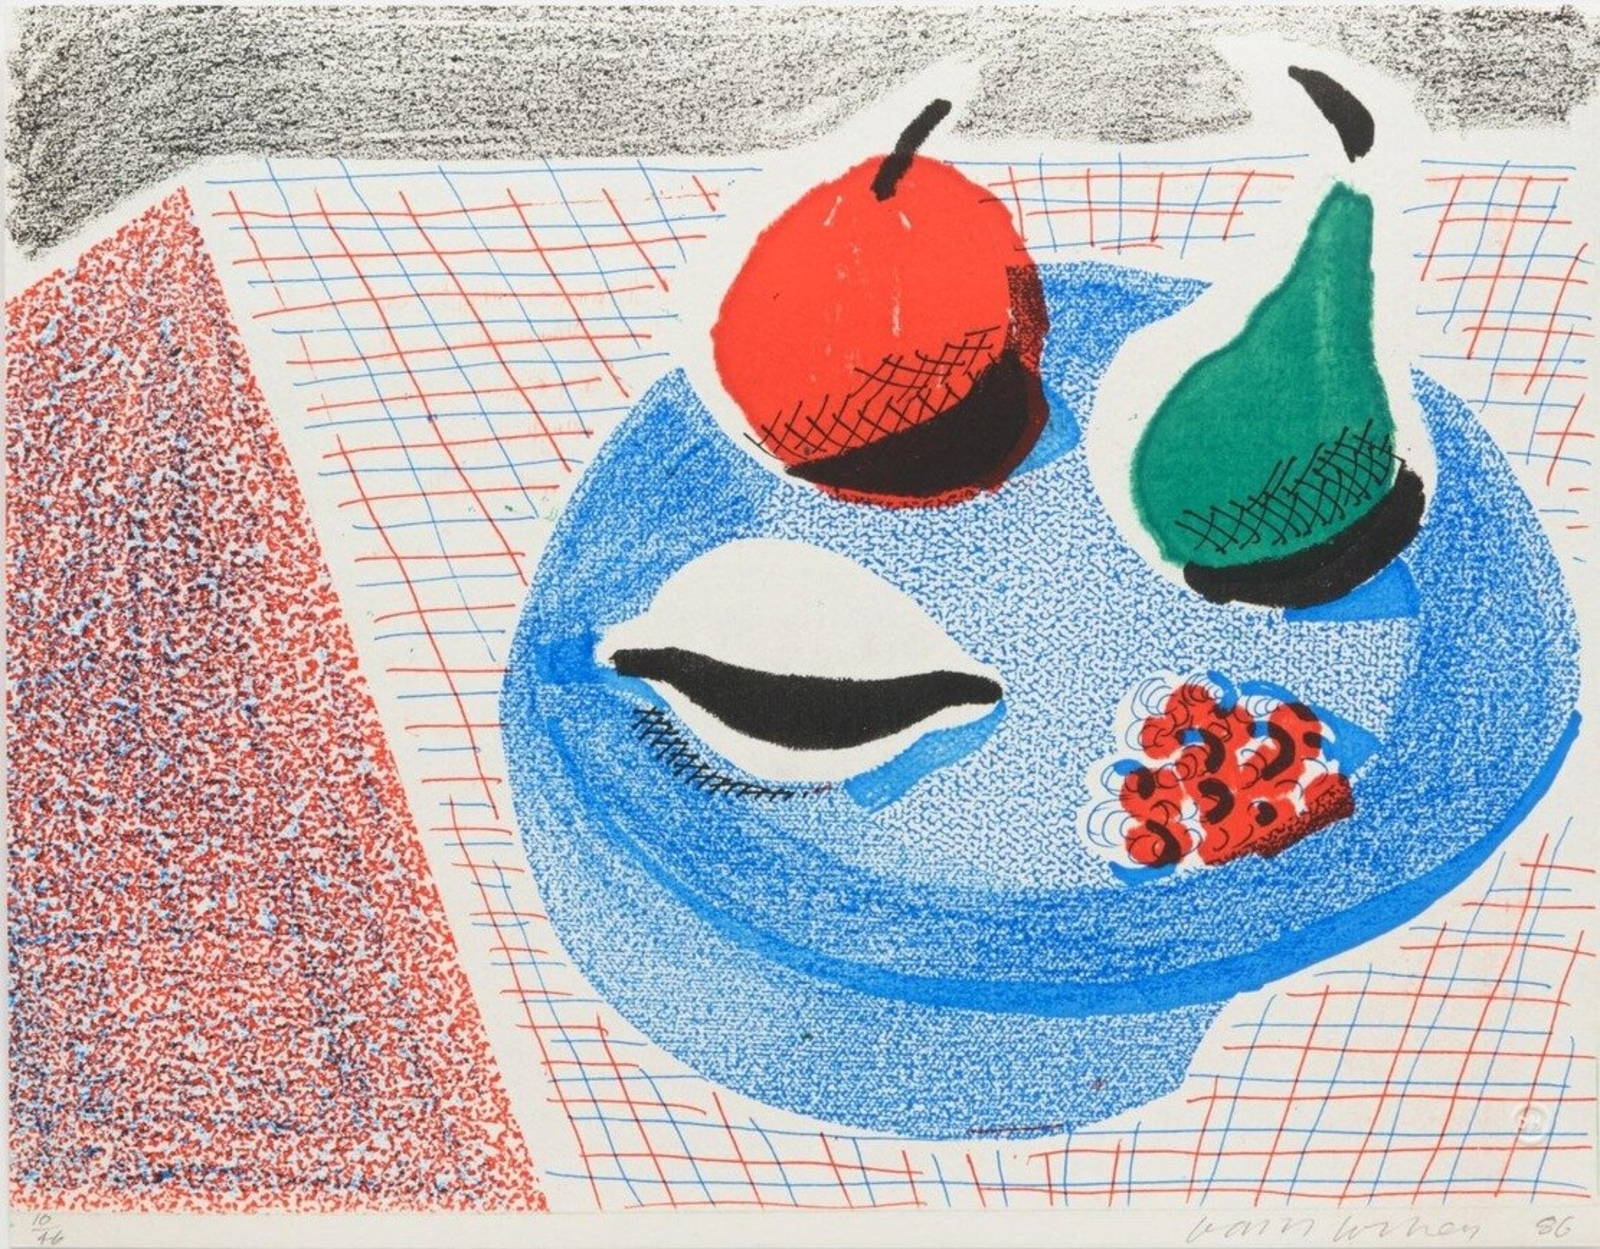 David Hockney, The Round Plate, April 1986, 1986. Courtesy of RAW Editions.